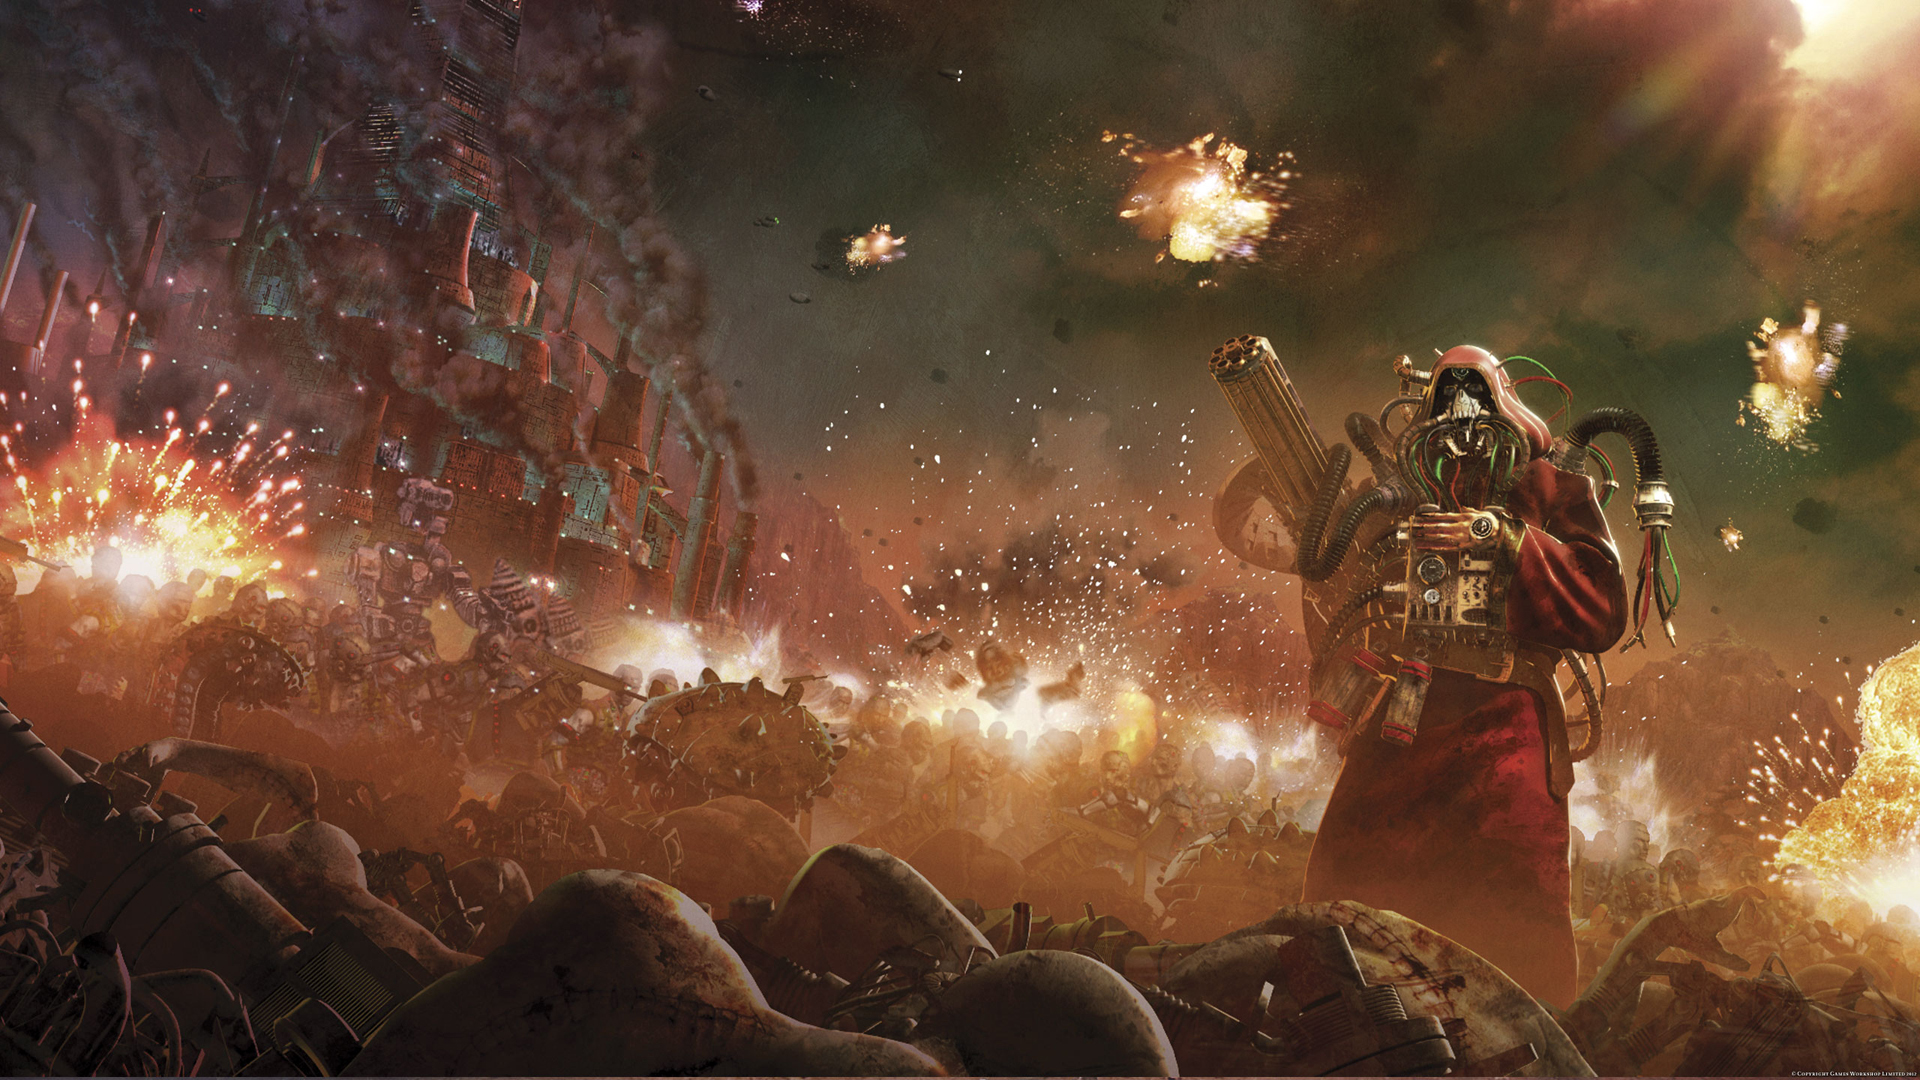 Wallpapers Hérésie d'Horus/Horus Heresy (mise en page/plus complet) 724652661984mechanicum